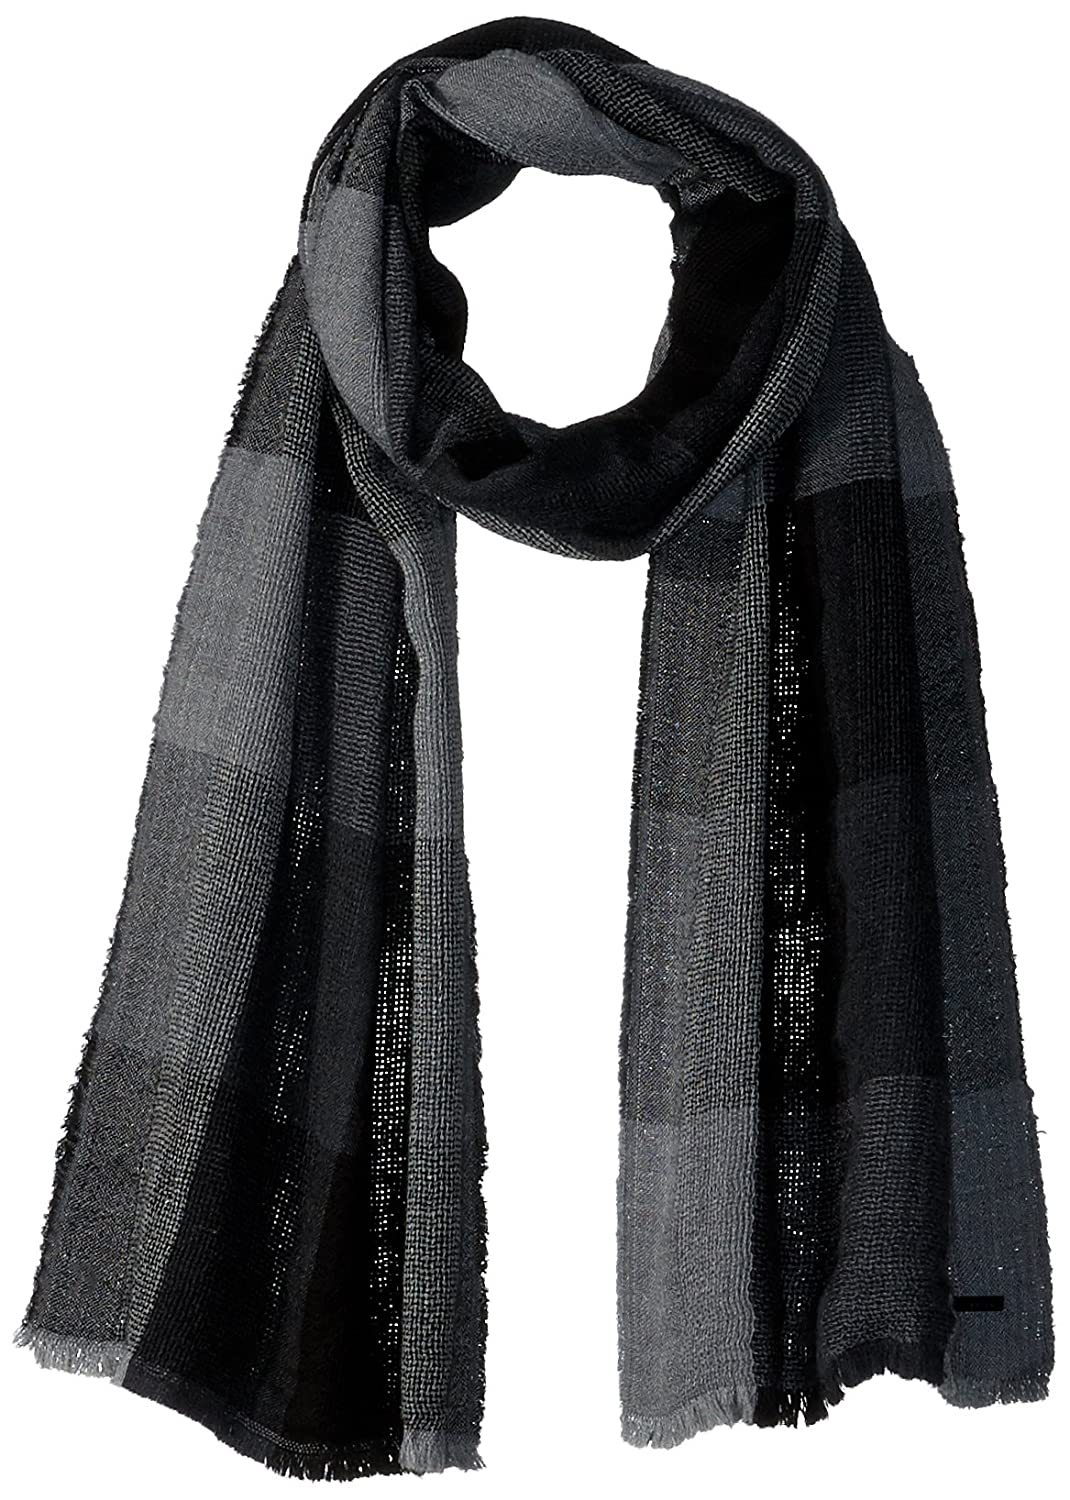 Calvin Klein Men's Double Open Weave Plaid Scarf Accessory Charcoal One Size HKC63503